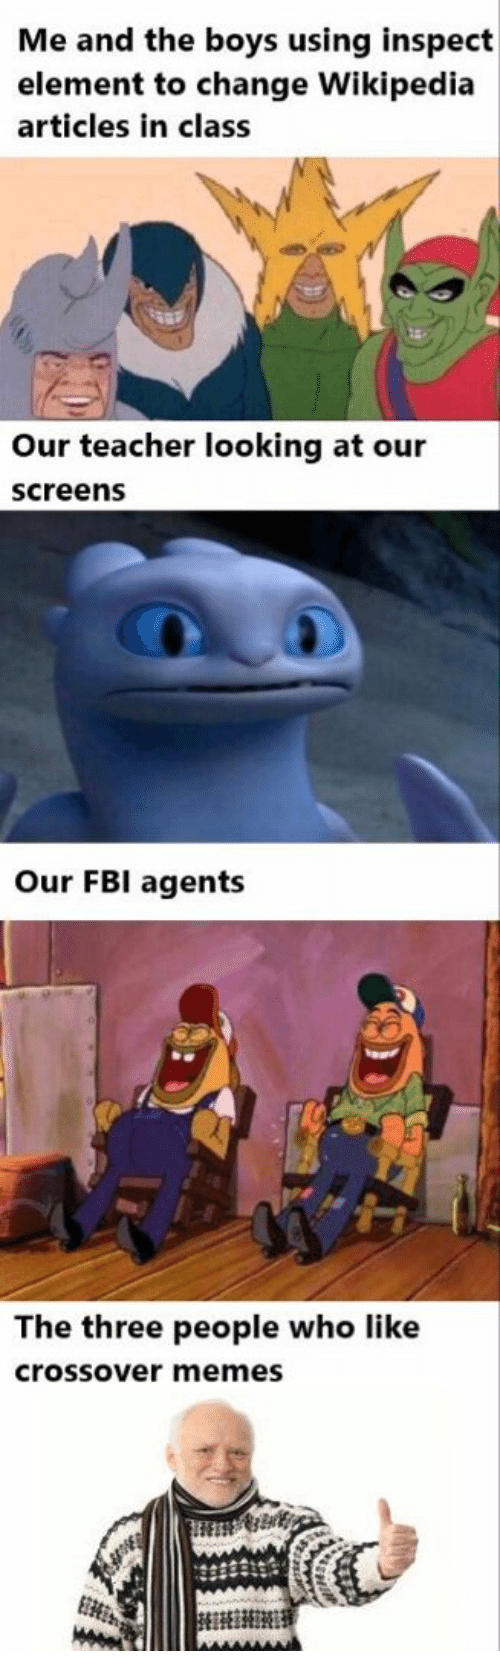 Fbi, Memes, and Teacher: Me and the boys using inspect  element to change Wikipedia  articles in class  Our teacher looking at our  screens  Our FBI agents  The three people who like  crossover memes